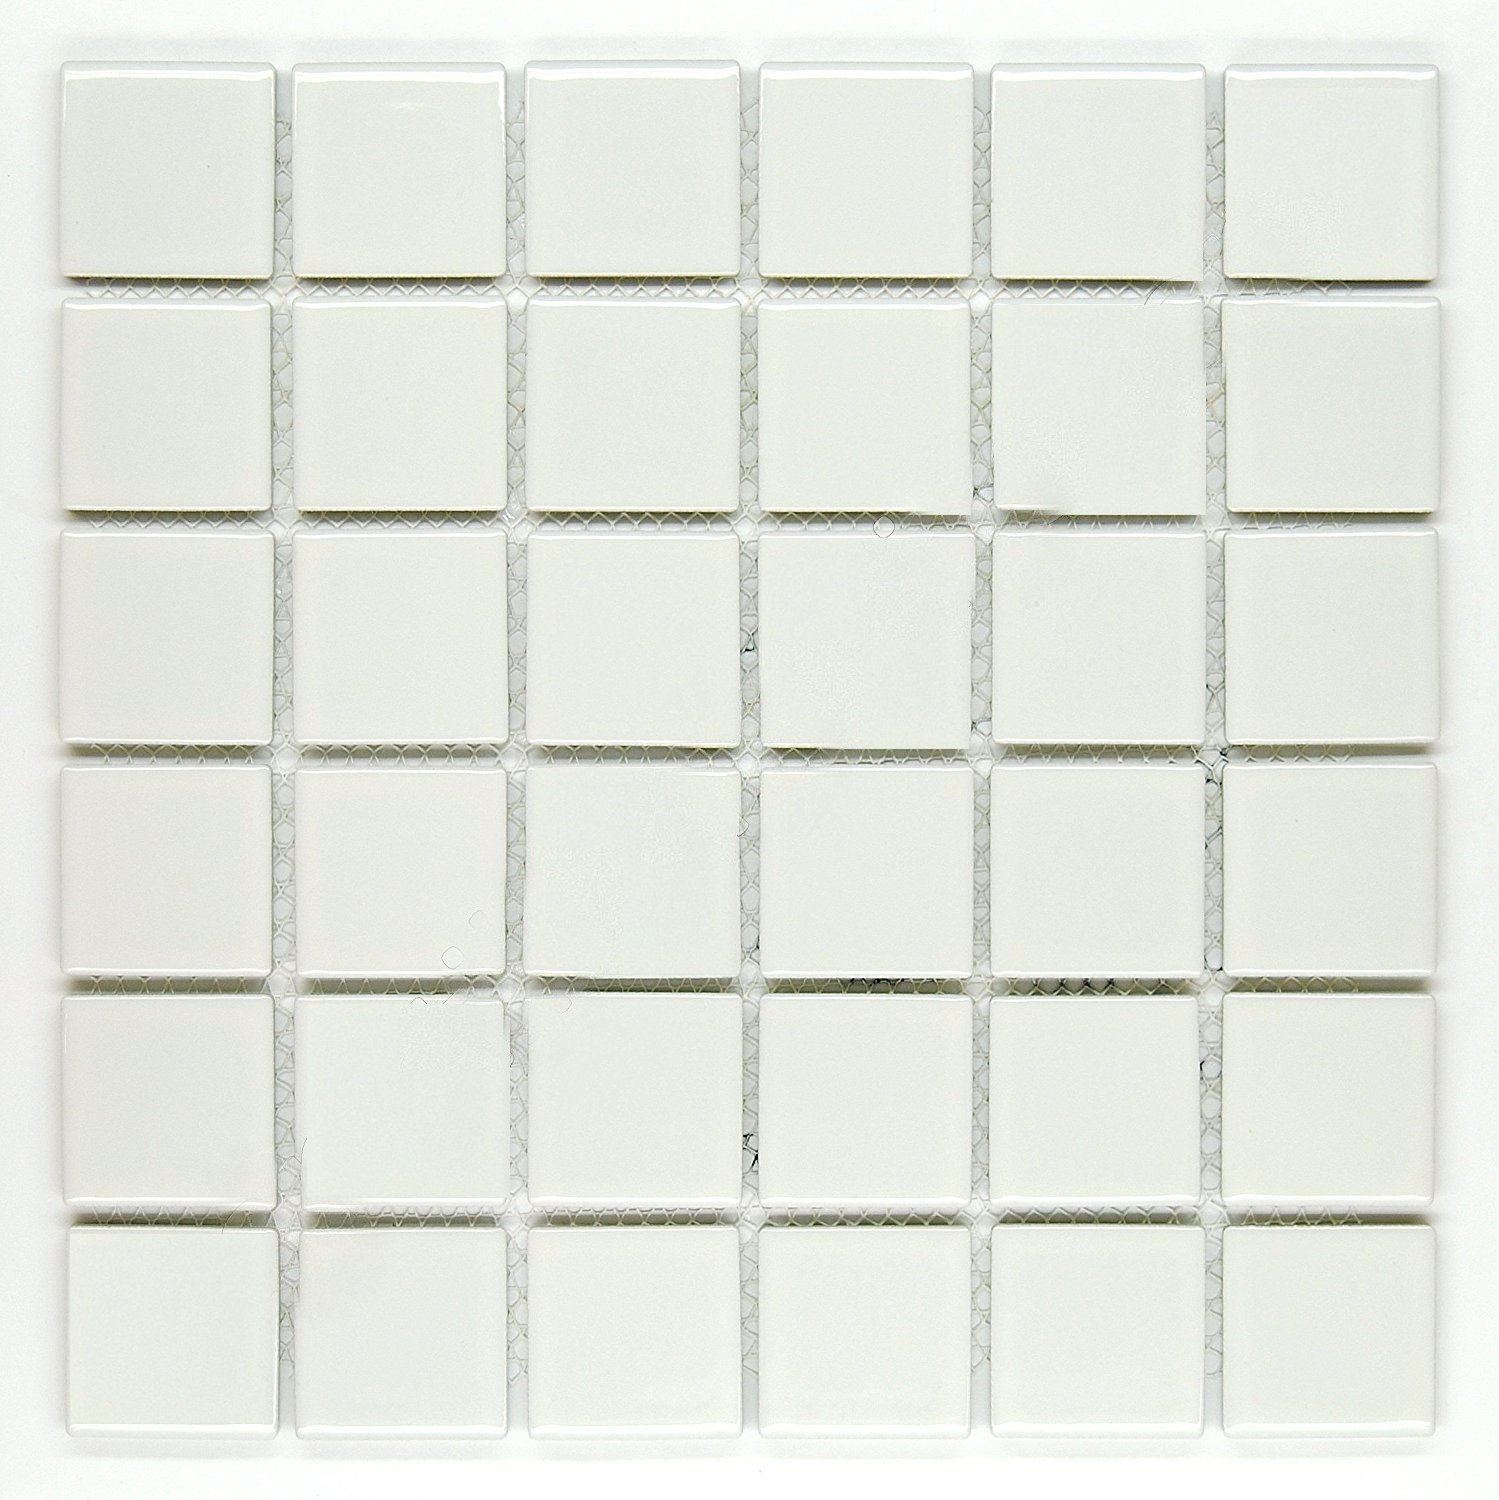 Vogue Premium Quality 2'' White Porcelain Square Mosaic Tile Shiny Look Designed In Italy (12x12) by Marble 'n things